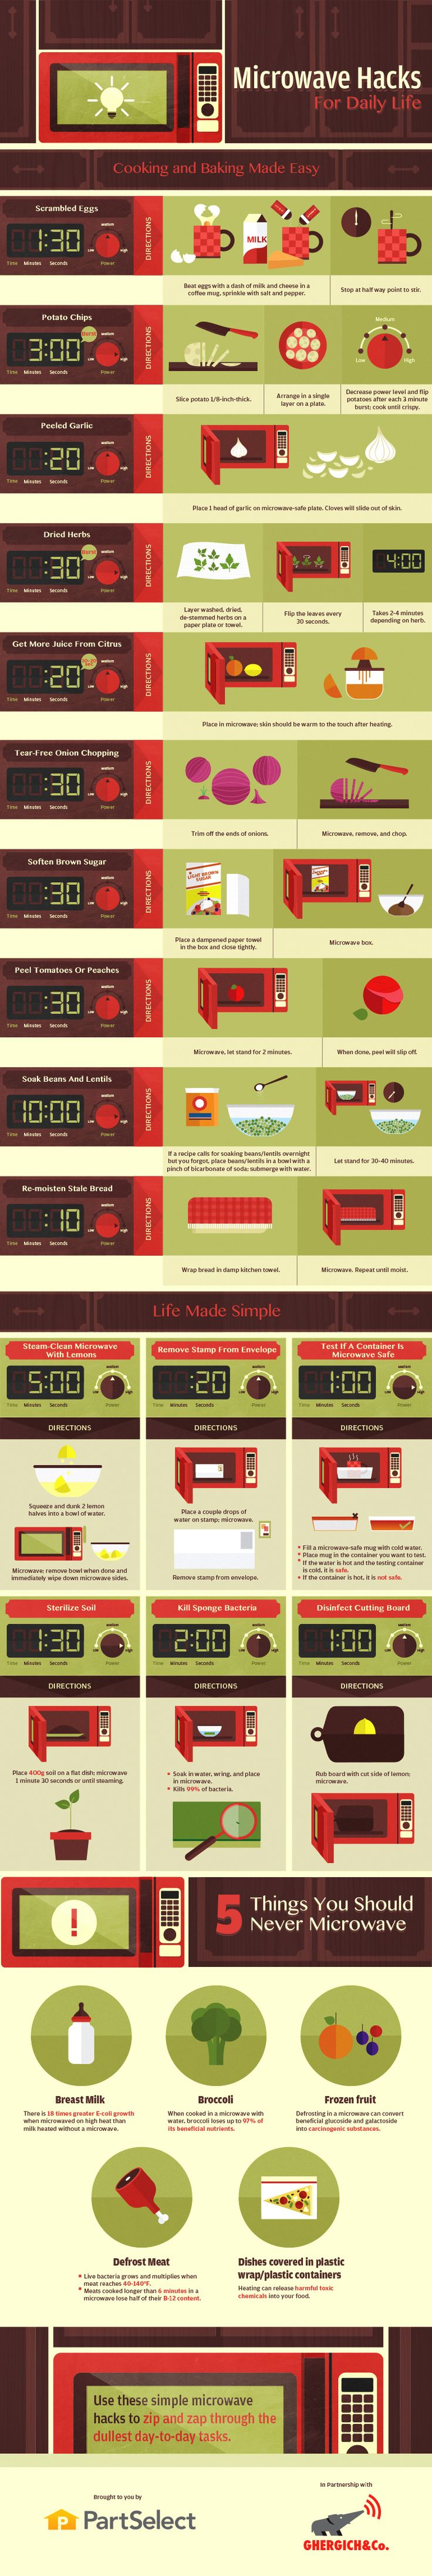 We might forget occasionally how powerful microwaves are. Not only can they heat food quickly, but they're useful for a variety of other tasks. This graphic shows you several examples of both.